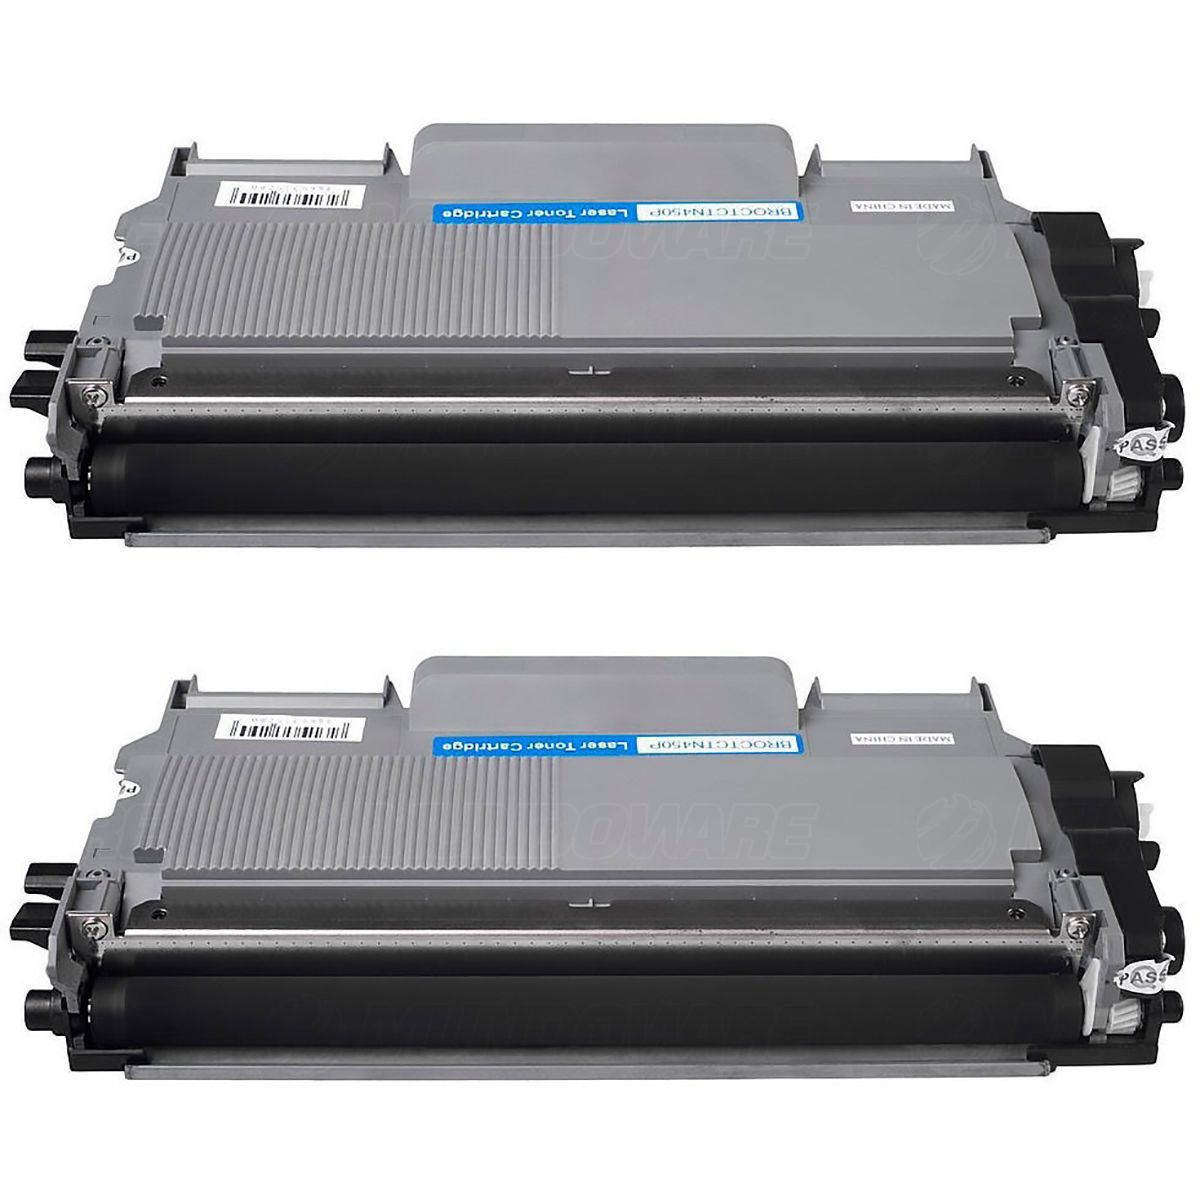 Compatível: Kit 2x Toner TN450 TN420 TN410 para Brother HL-2130 HL-2132 DCP-7055 DCP-7060 DCP-7065 / Preto / 2.600